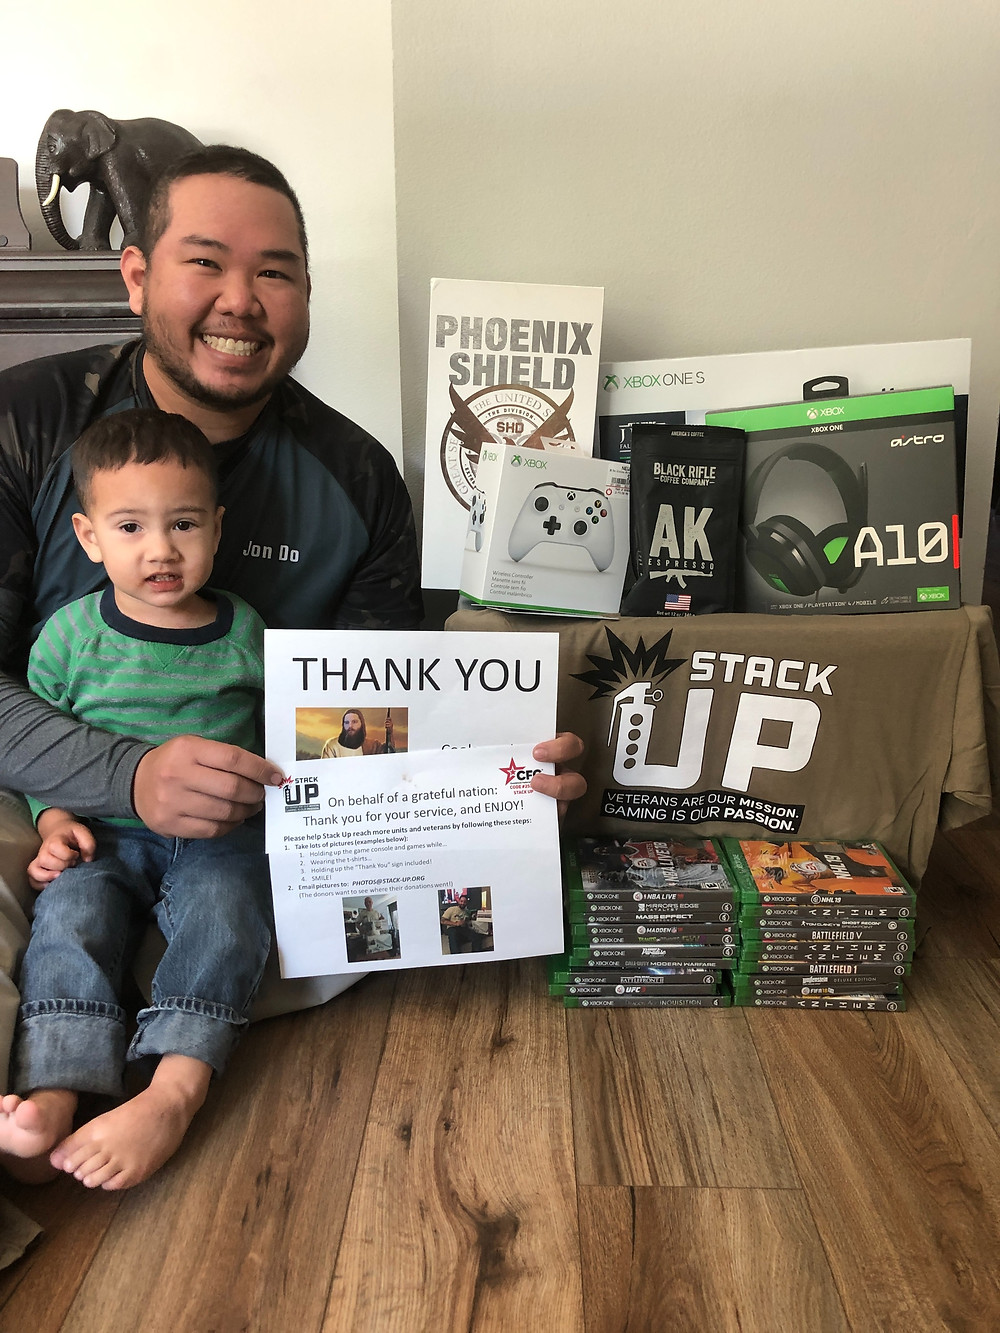 Jonathan with his kid holds up the Stack Up Thank You message from the Supply Crate. The Supply Crate consists of such wonderful gaming goodies as The Division 2 Phoenix Shield Collector's Edition, White Xbox gaming controller, Astro A10 gaming headphones, an Xbox One S, Stack Up T-shirt, and two stacks of xbox videogames. The videogames total 20.